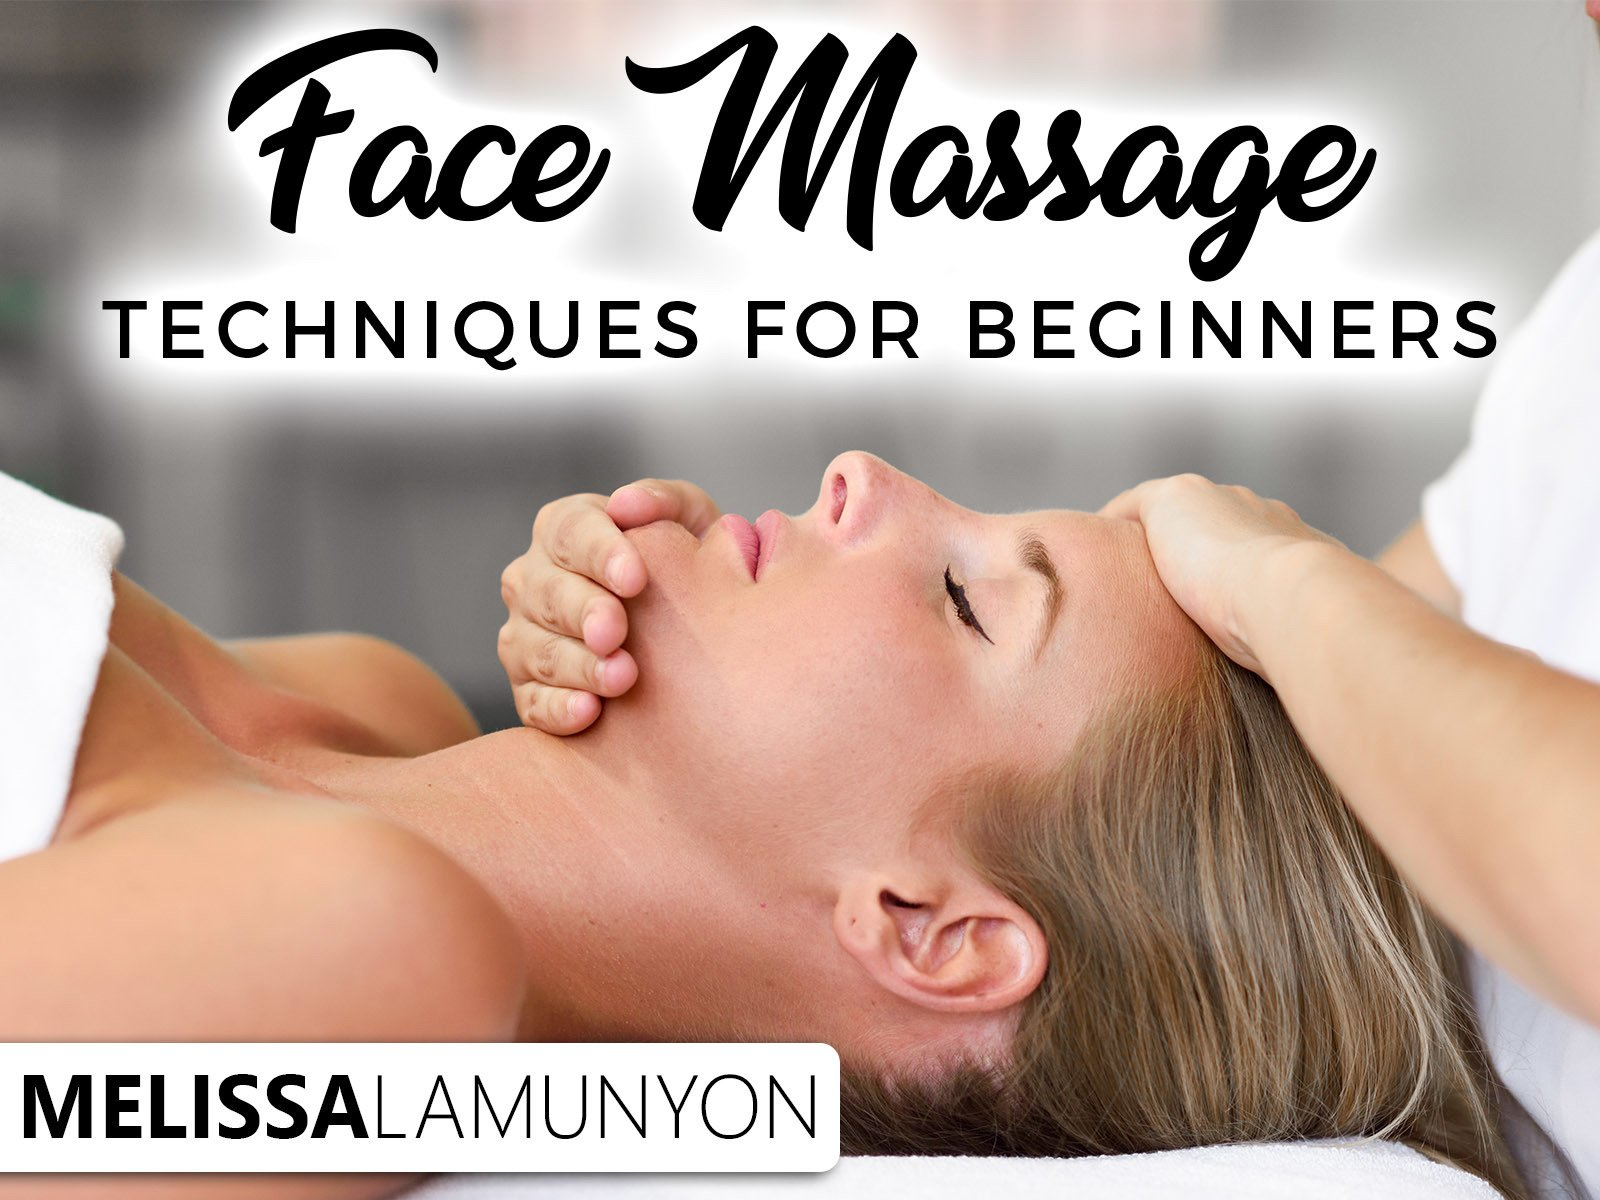 Face Massage Techniques For Beginners - Season 1